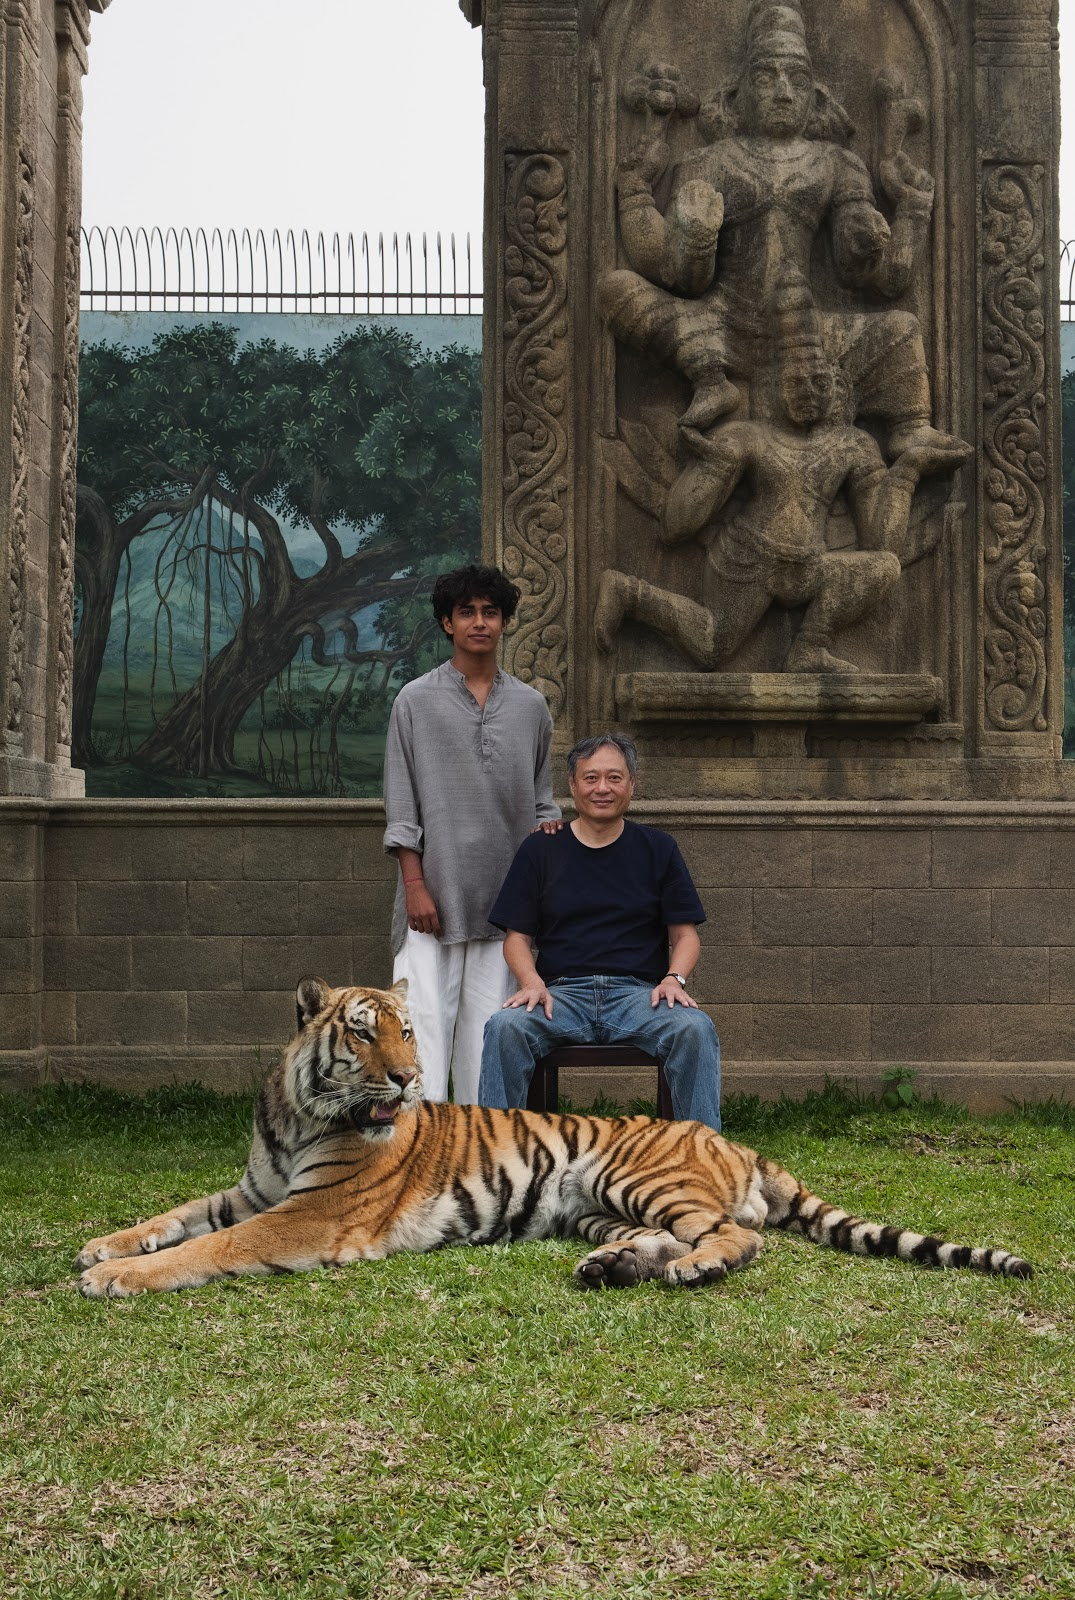 Exclusive 39 life of pi 39 behind the scenes photos images for Life of pi pool scene